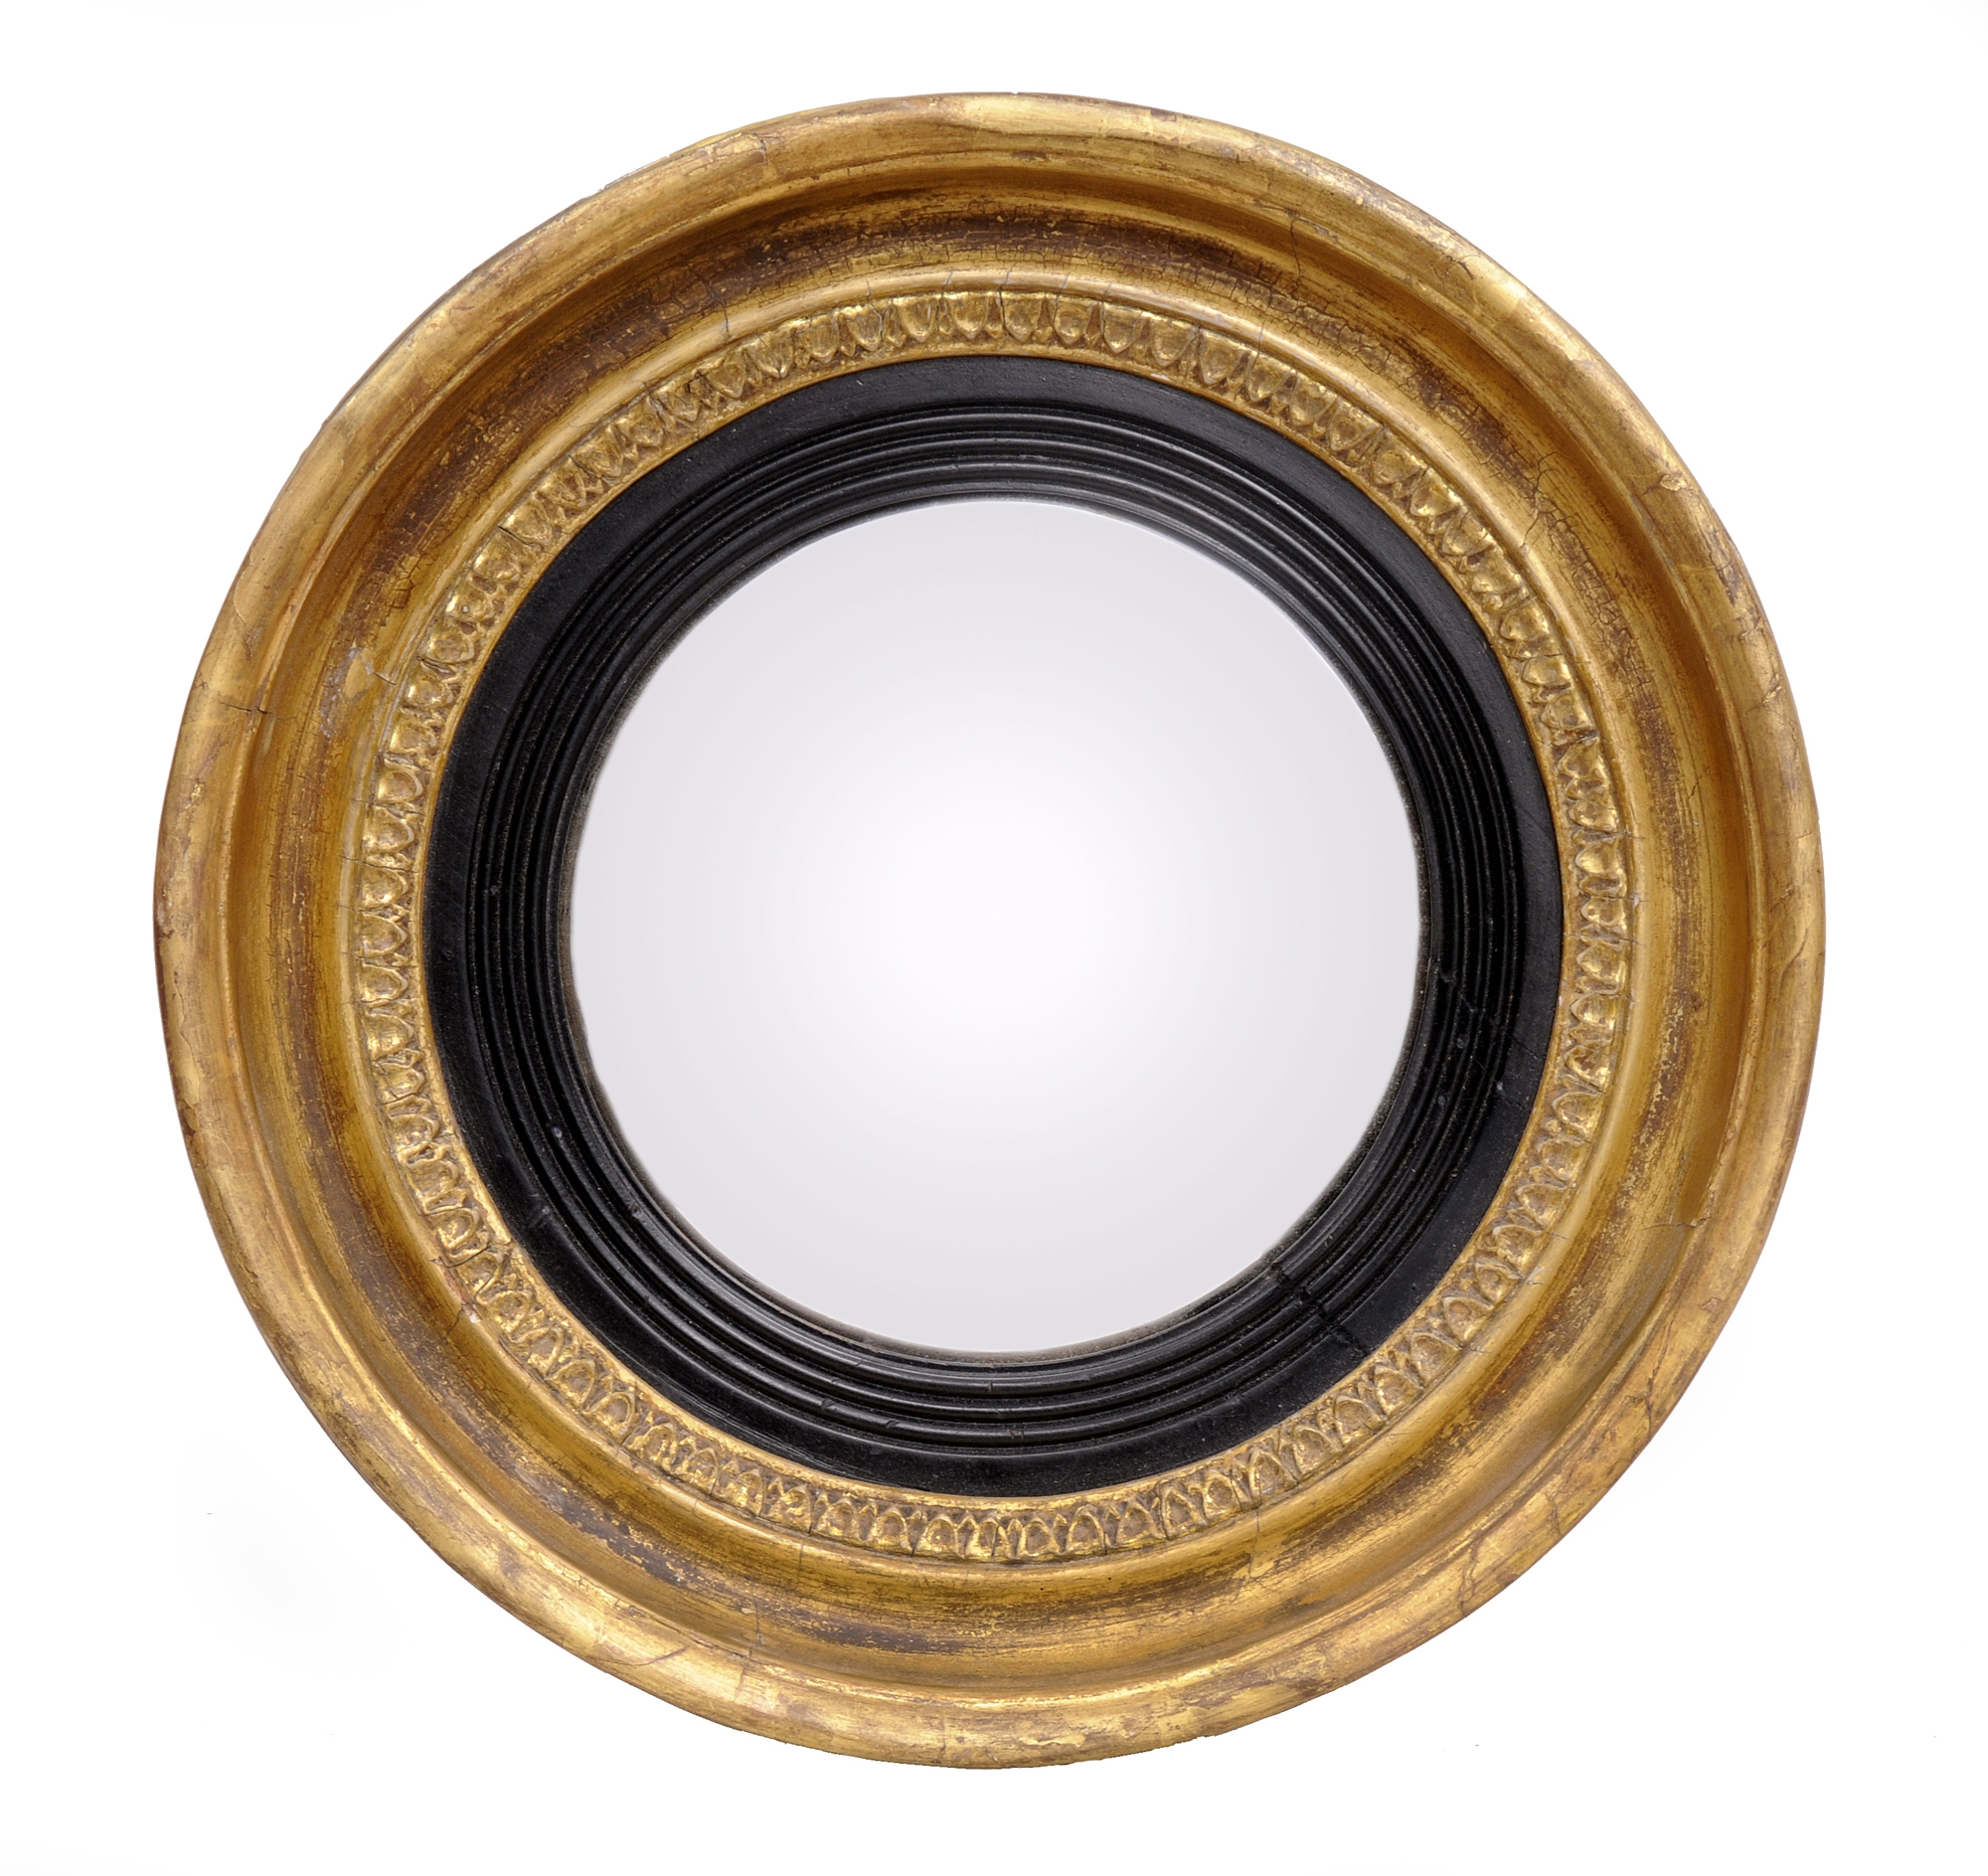 English Regency Convex Mirror Small Antique Mirror Throughout Small Convex Mirrors (Image 4 of 15)